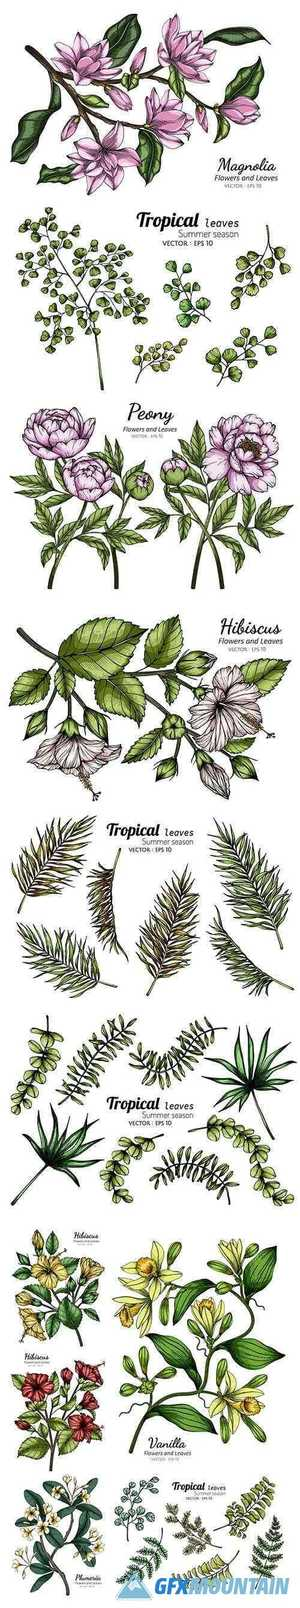 Tropical and other Leaf Drawing Illustration